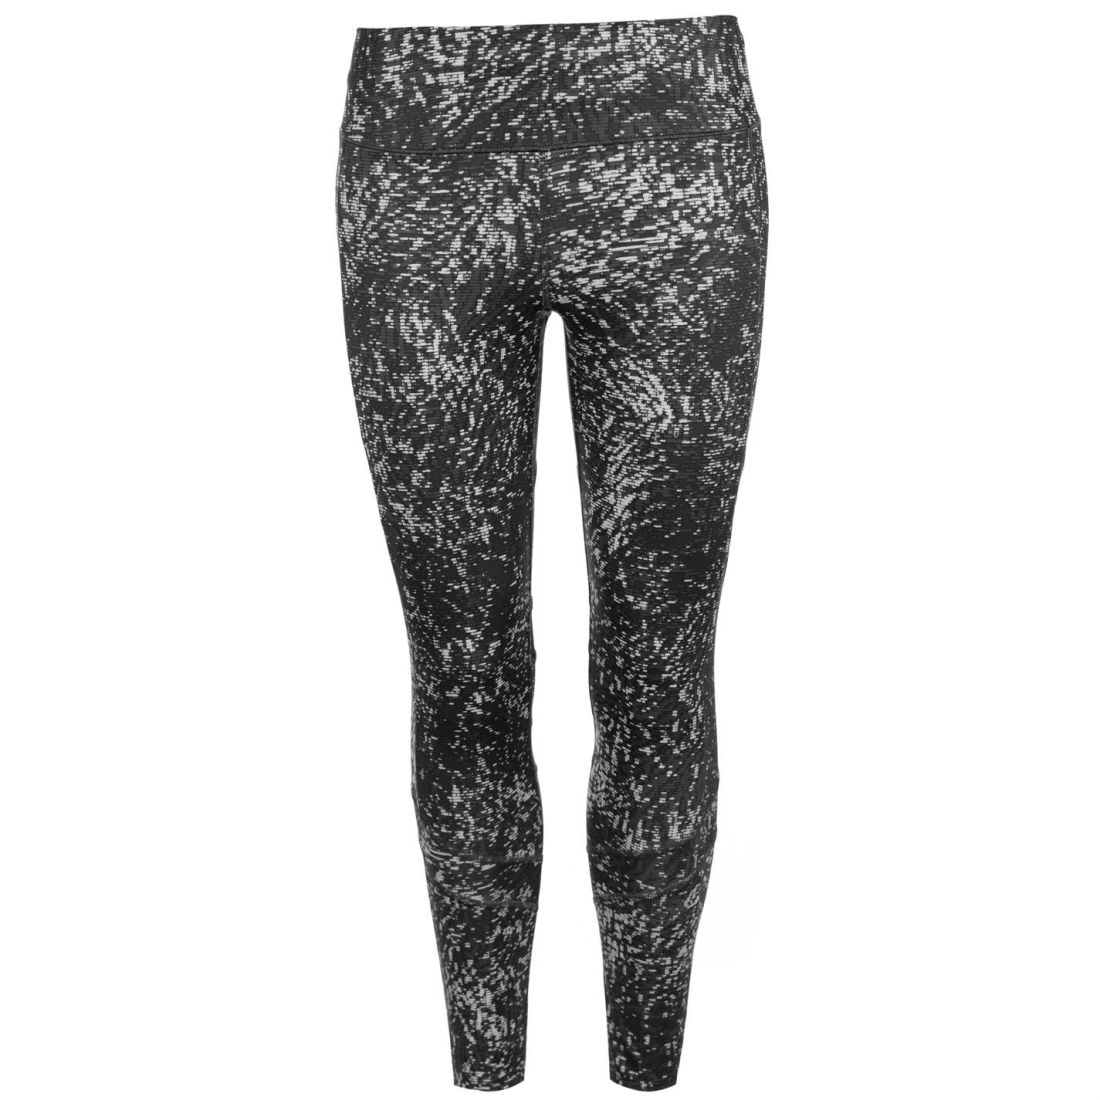 5a96b115feaa6f adidas Womens HWD 7 8 Tights Performance Pants Trousers Bottoms Lightweight  Zip